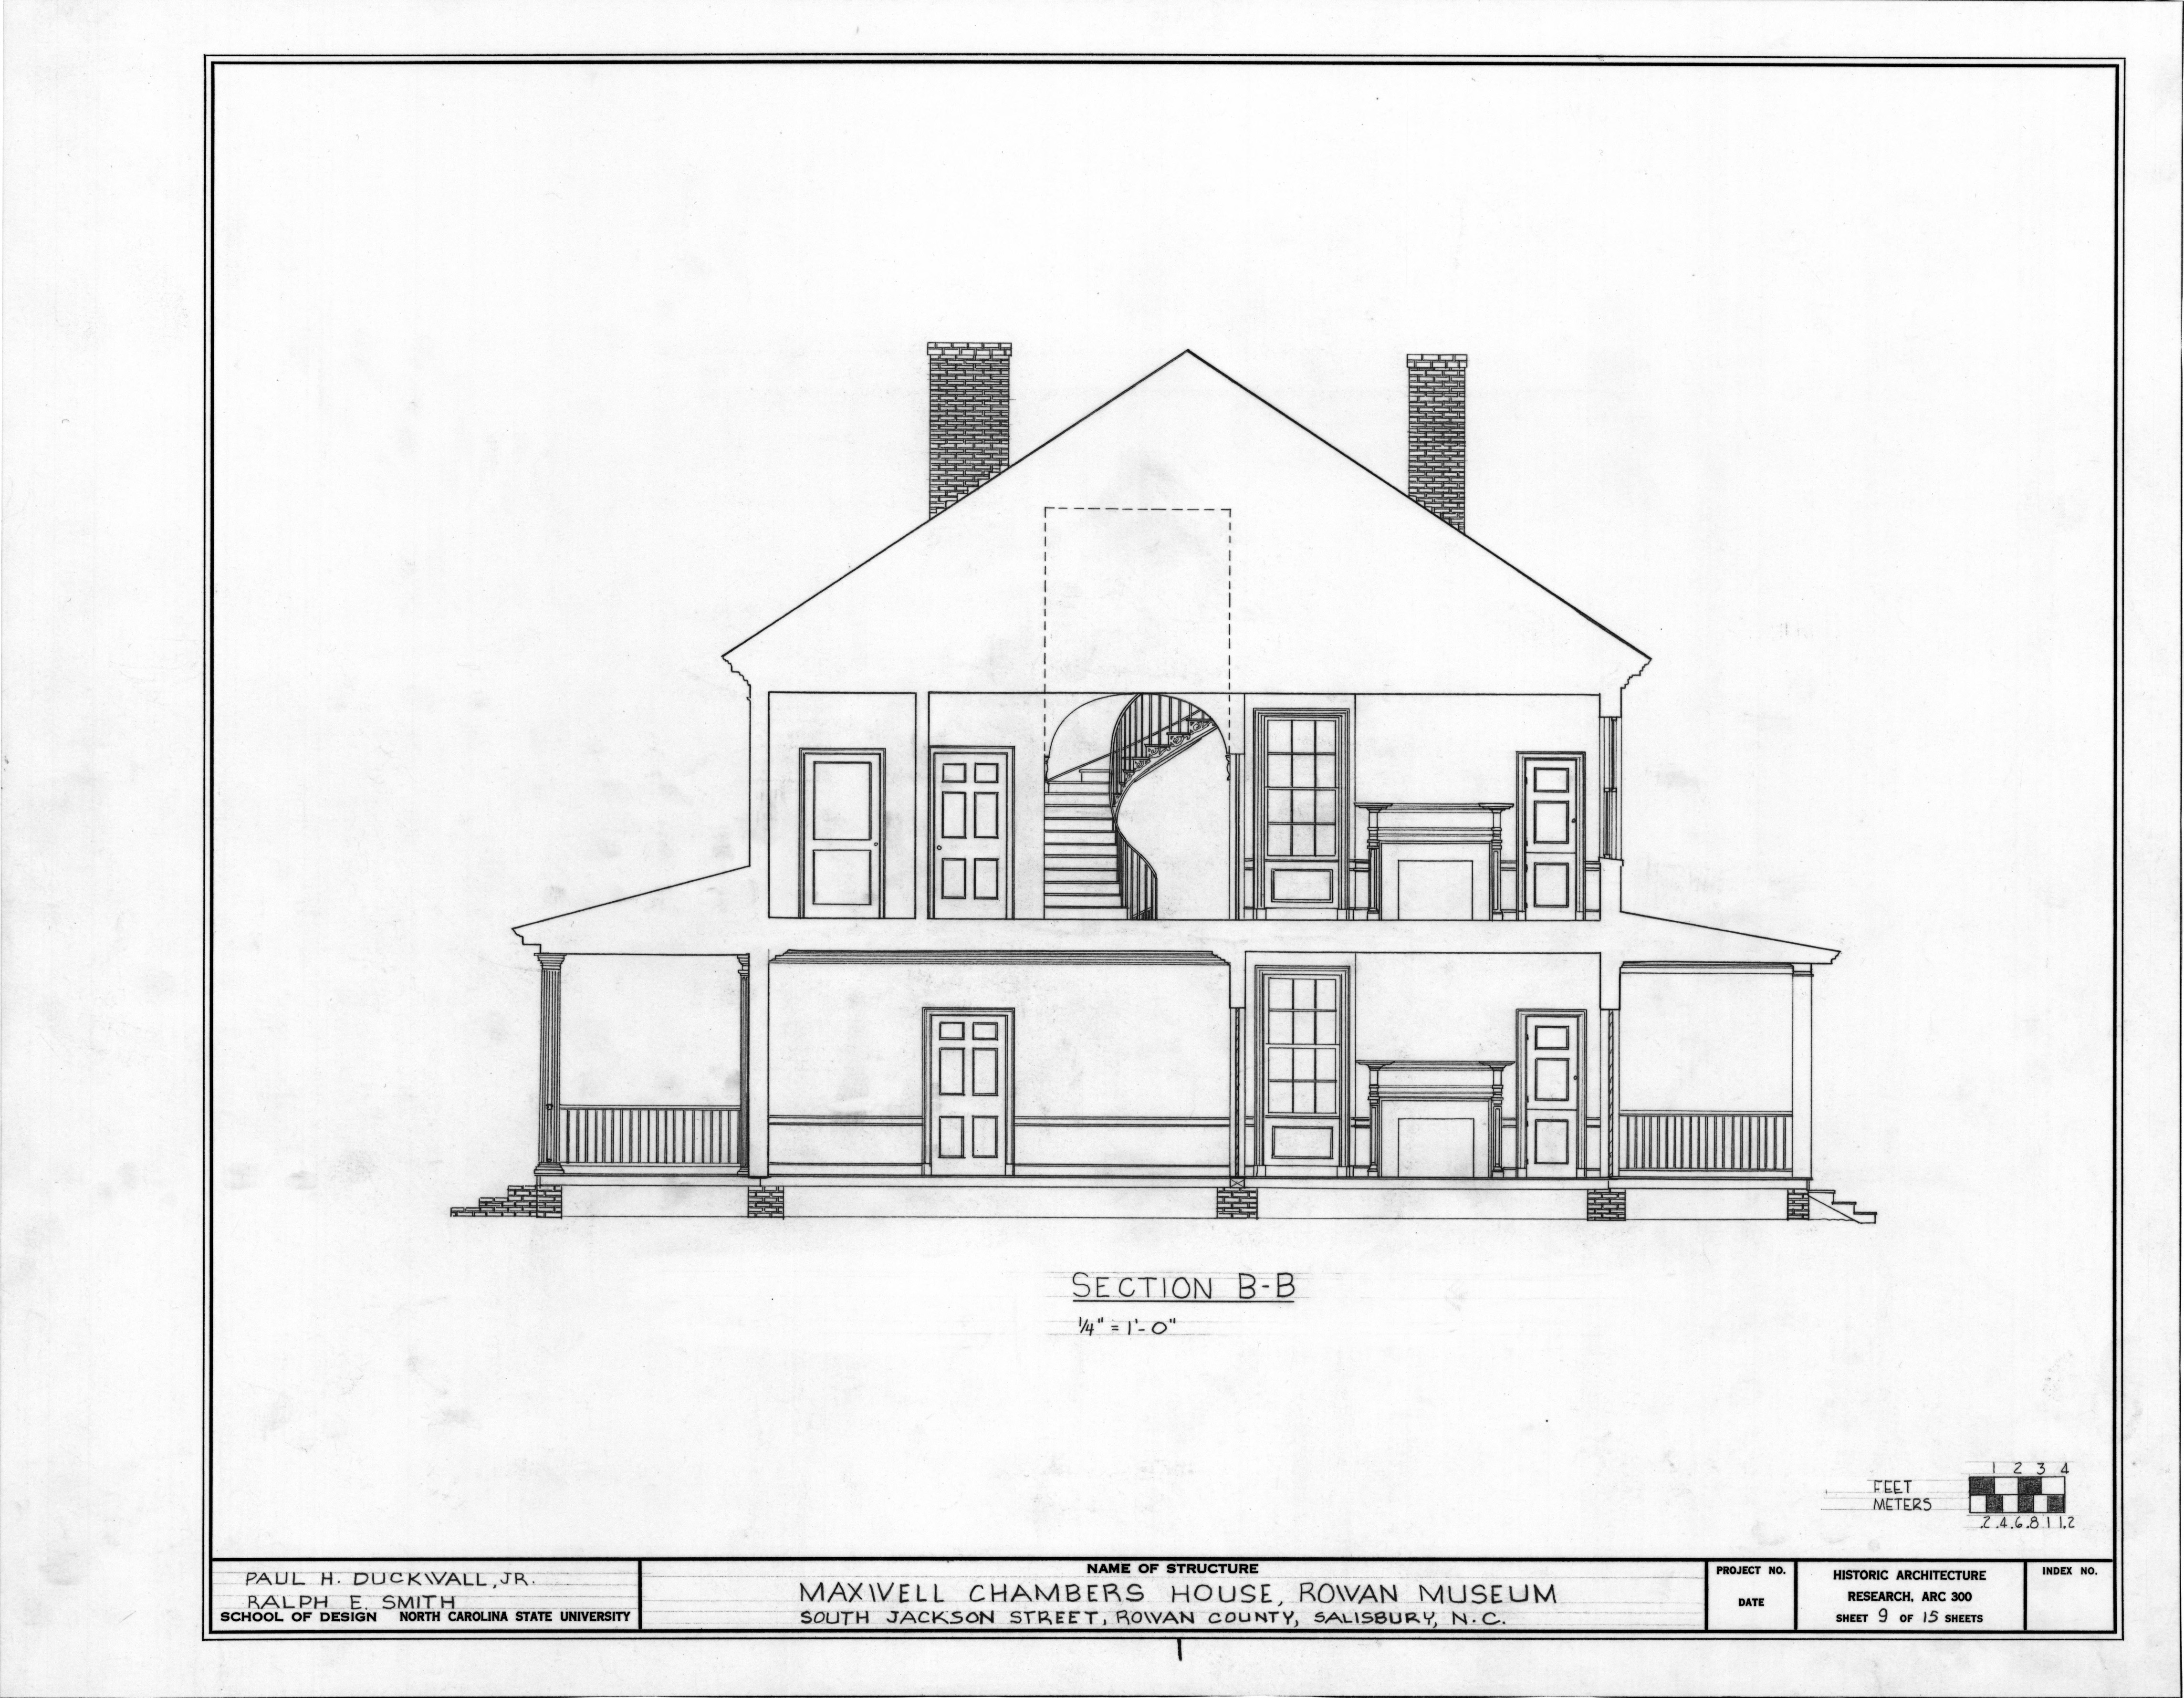 Cross Section Drawing of a House House Cross Section Drawing